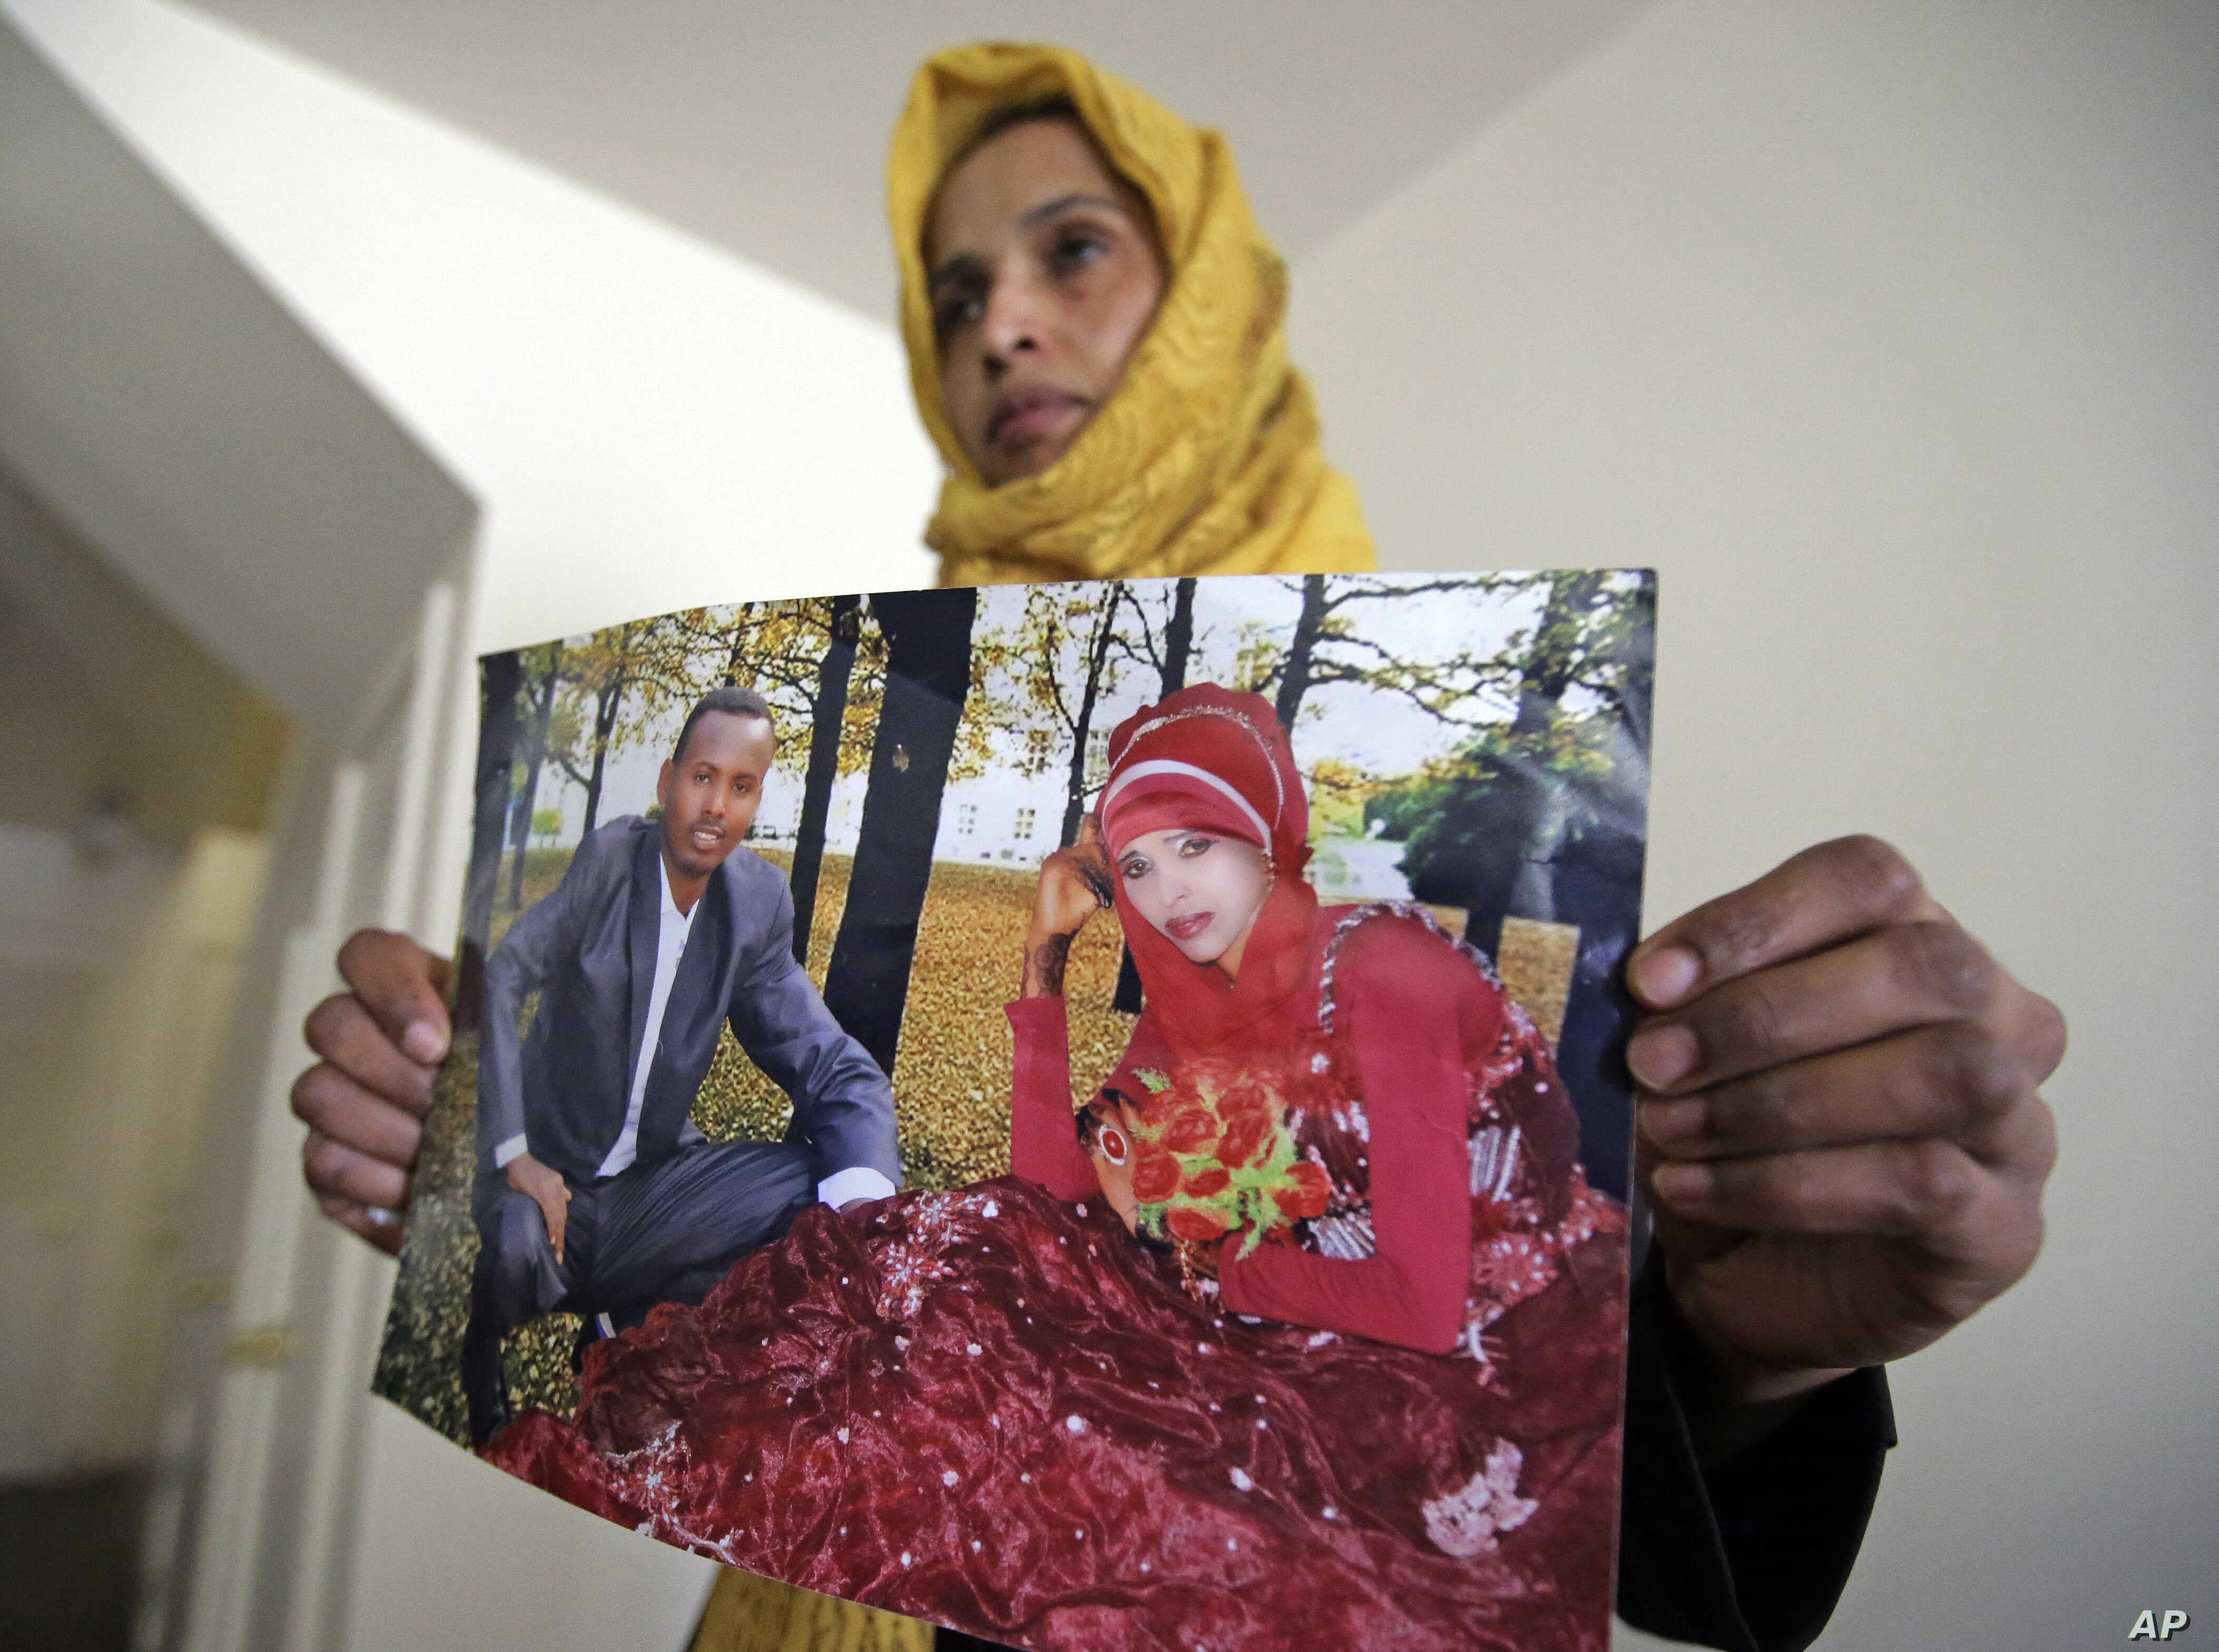 Somali refugee Nimo Hashi holds a photo of her husband Tuesday, Jan. 31, 2017,  in Salt Lake City. Hashi bought a new kitchen table and couches for her Salt Lake City apartment in joyful anticipation of reuniting Friday with her husband for the first...